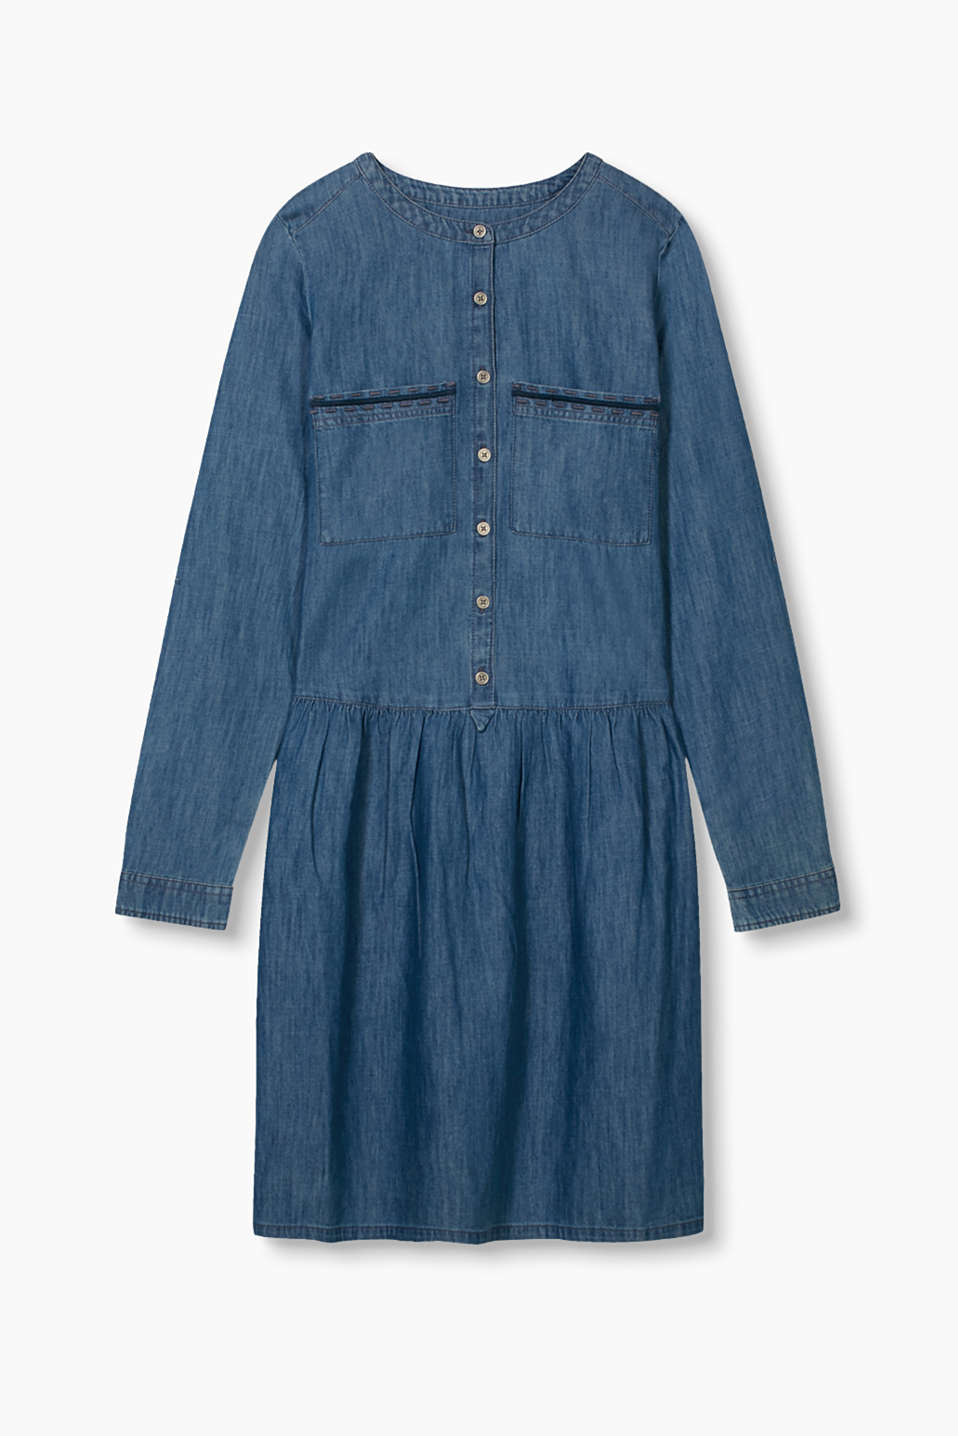 Fashionable denim dress with embroidered pockets and a slightly flared skirt section.